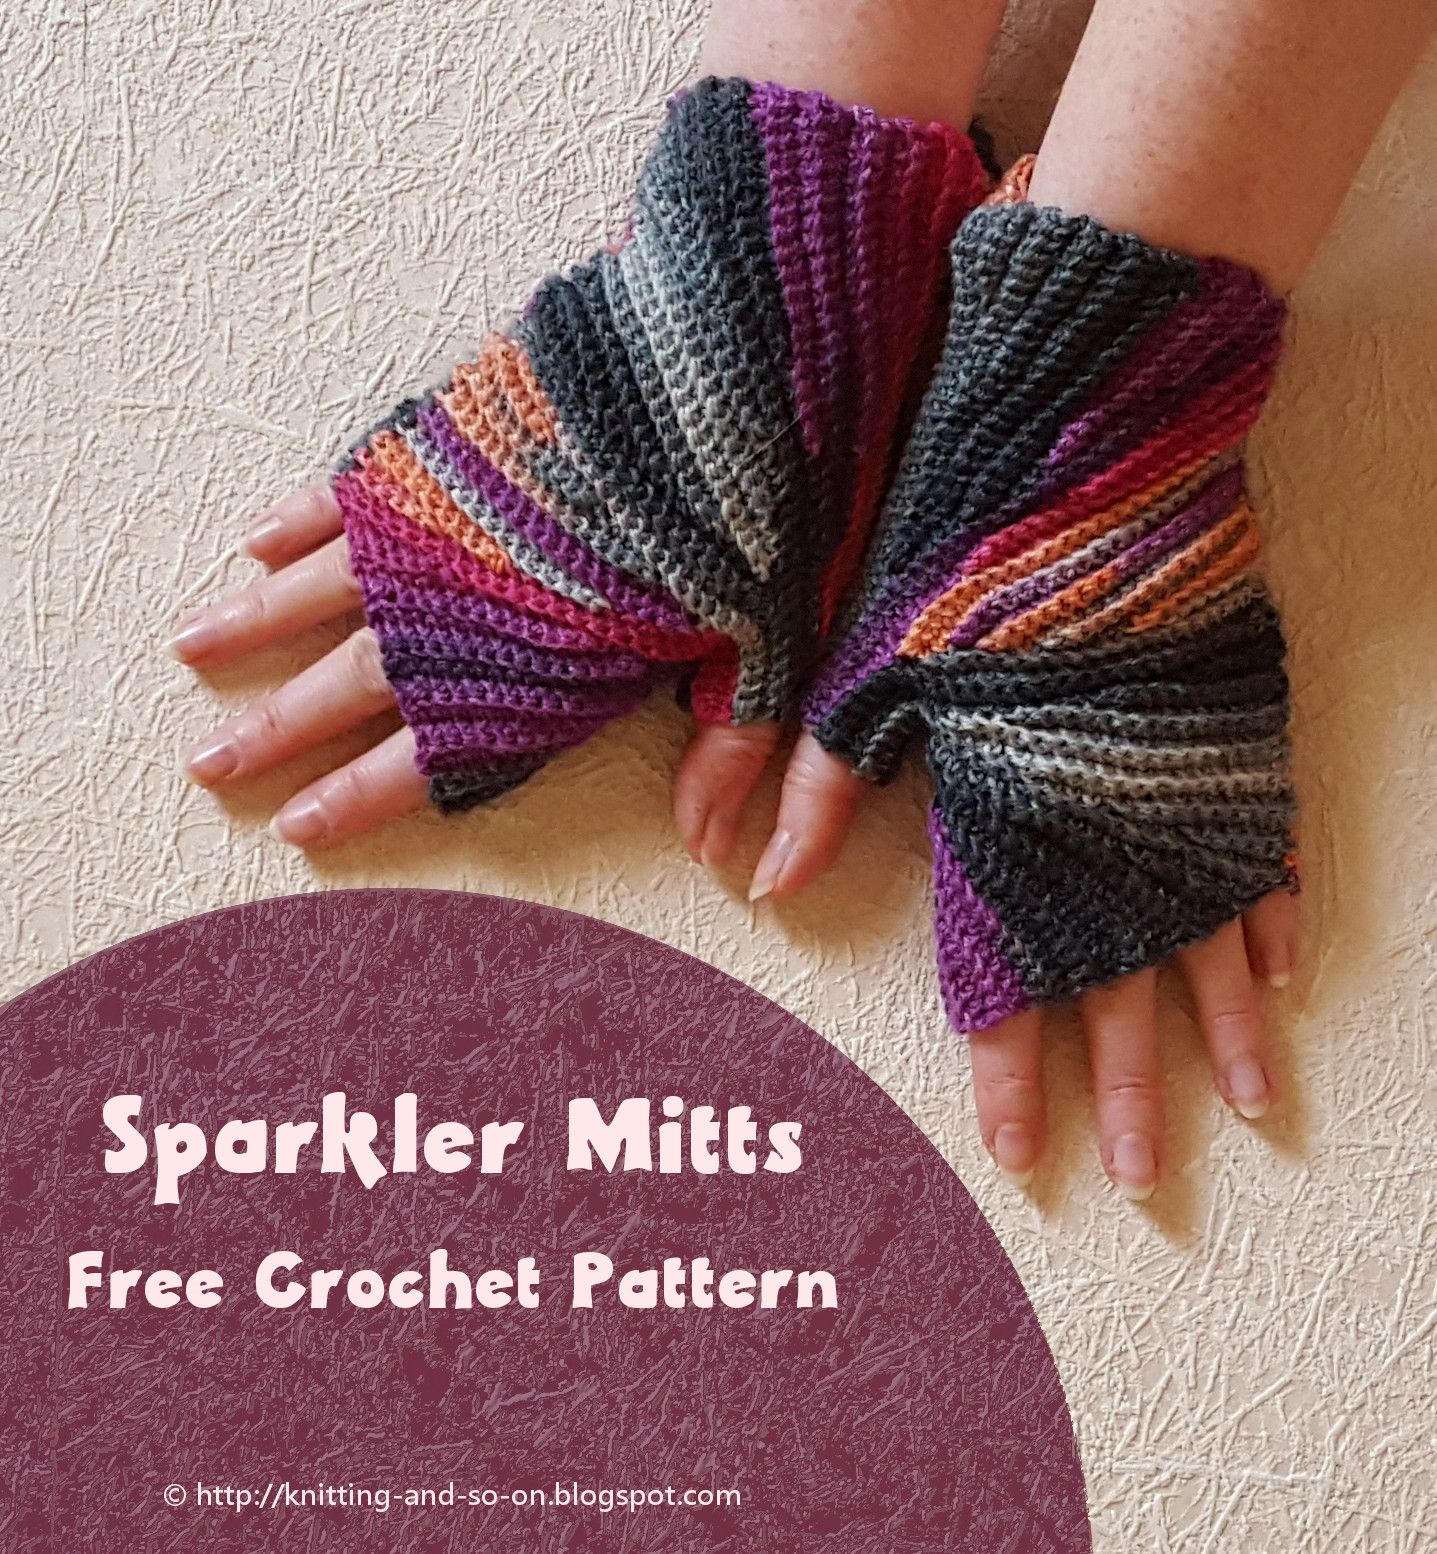 Sparkler Mitts - free crochet pattern by Knitting and so on | My ...